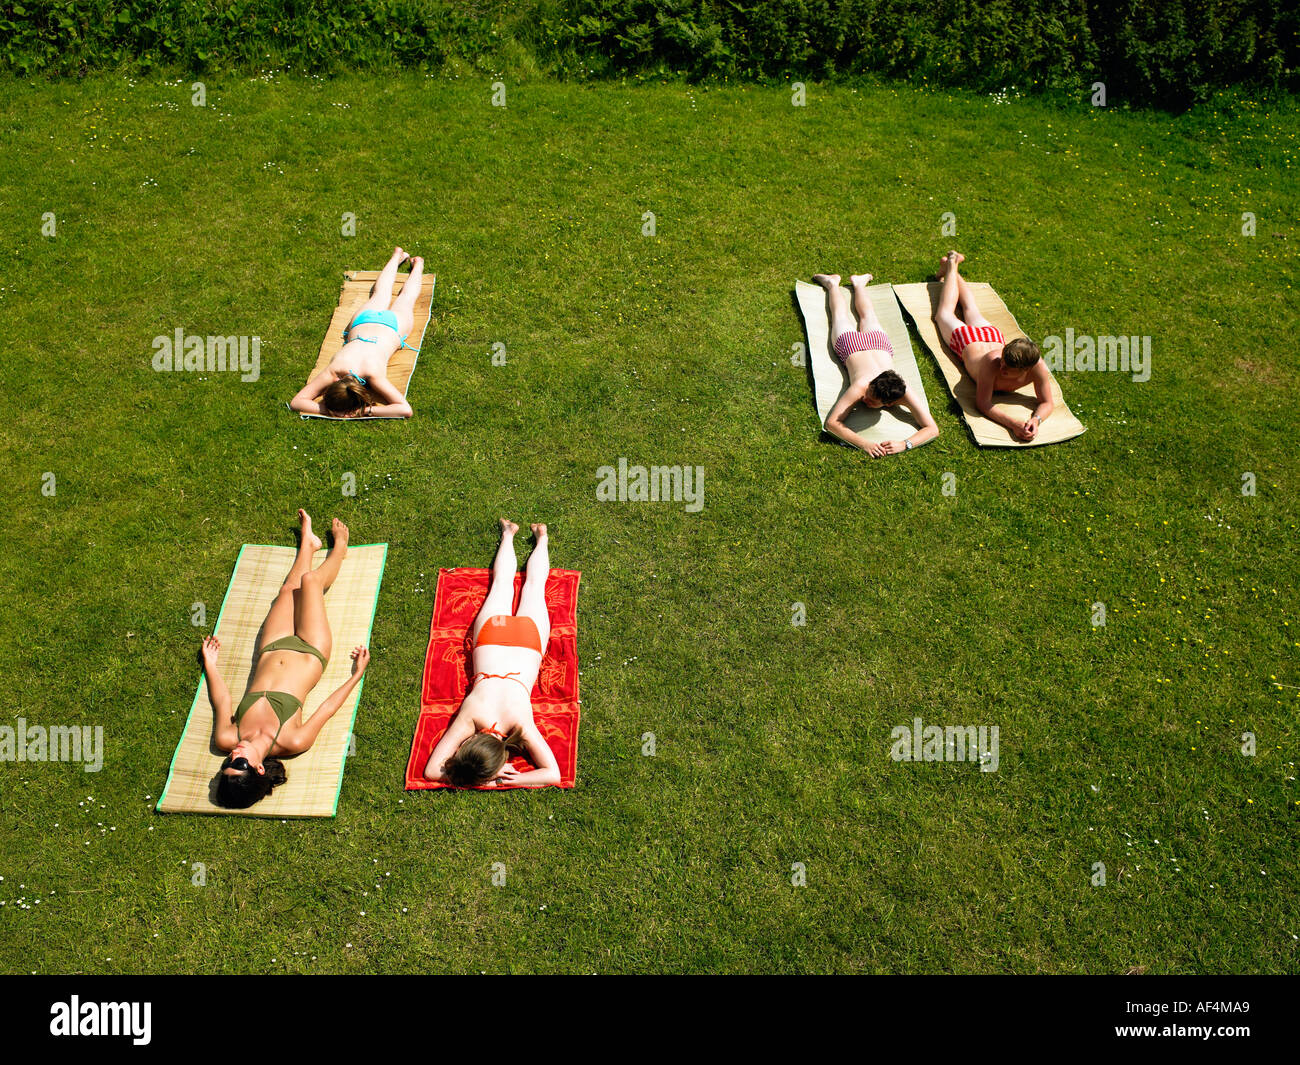 Young people sunbathing in a garden - Stock Image